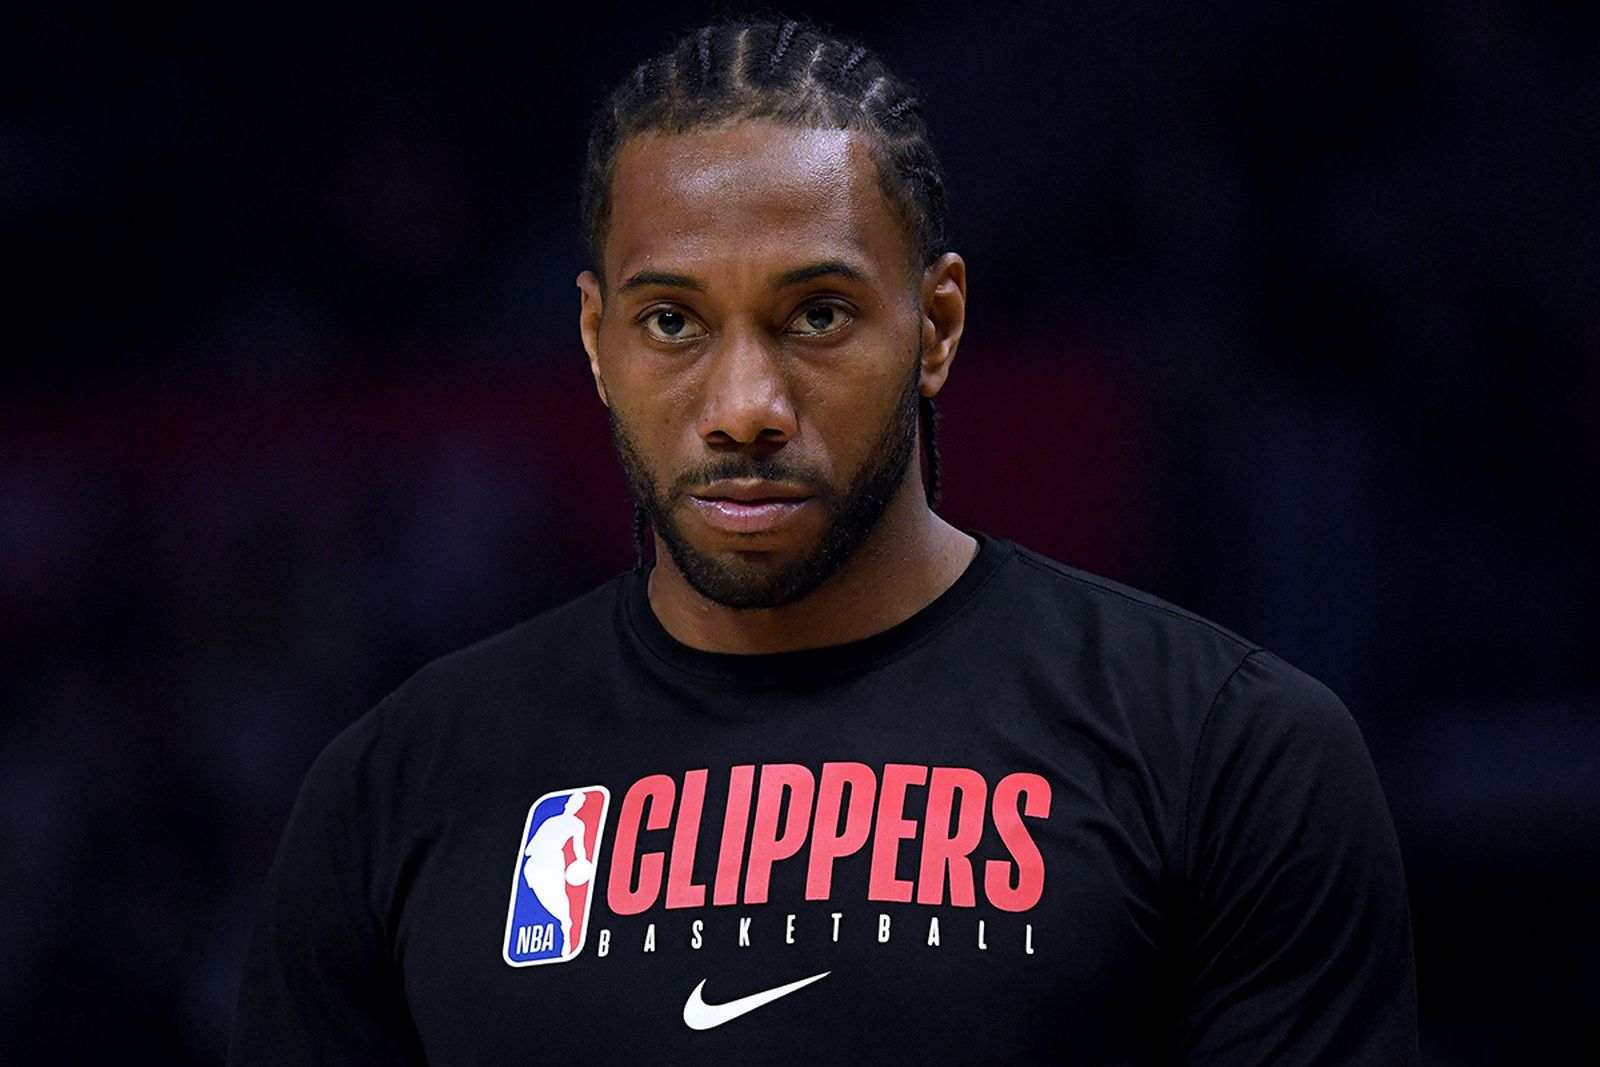 Kawhi Leonard #2 of the LA Clippers before the game against the Denver Nuggets